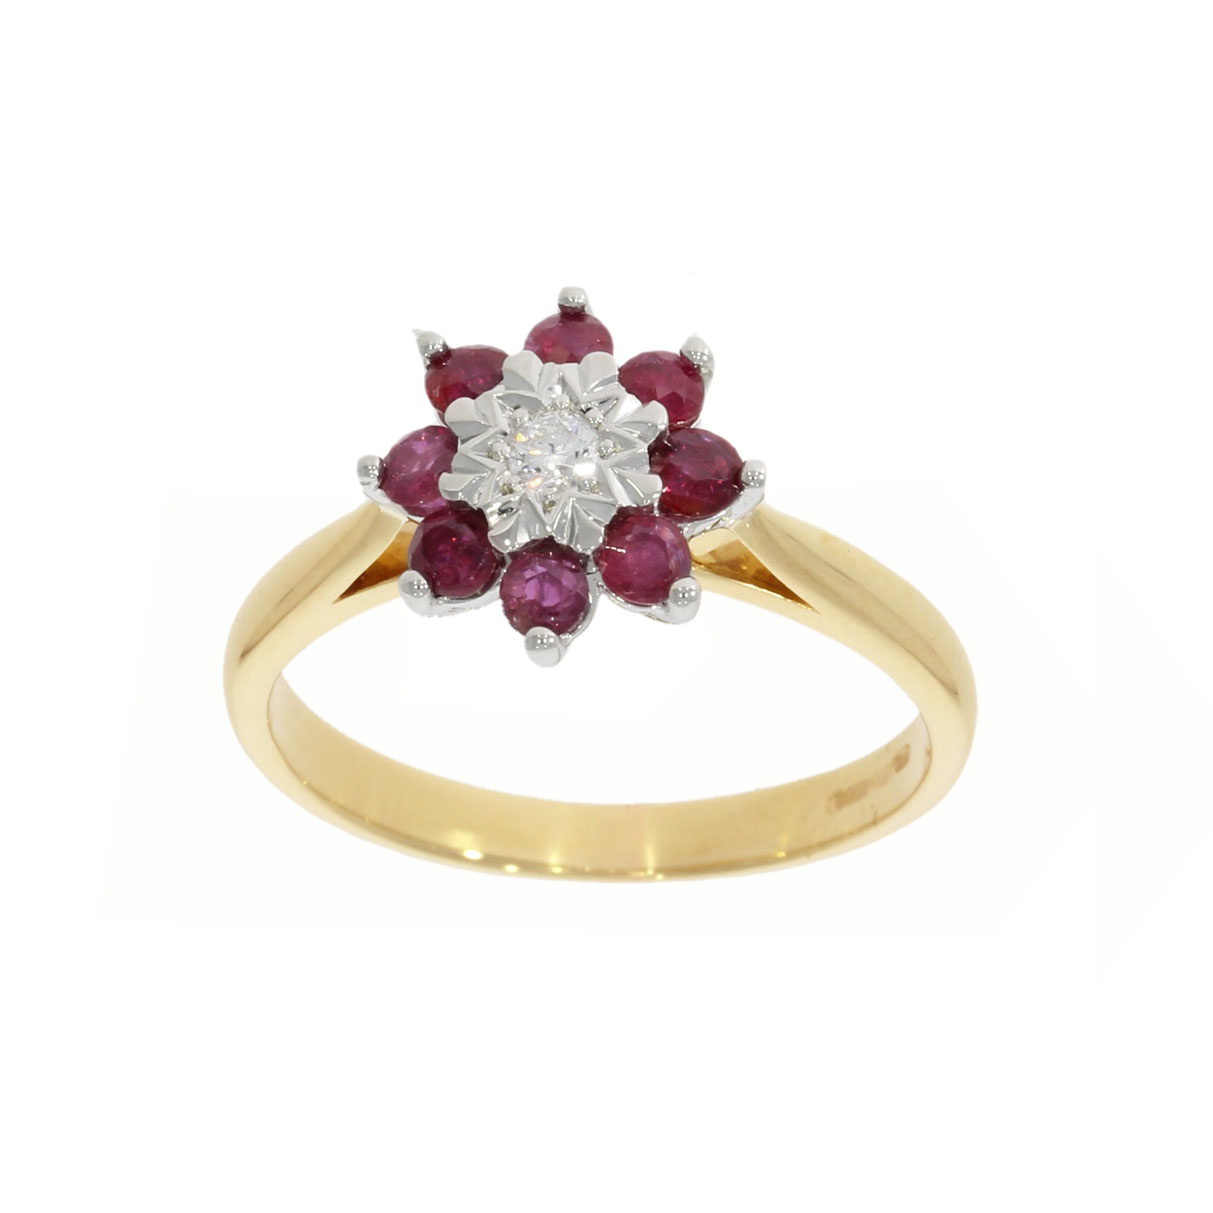 star set ruby rubies diamond cluster ring remodel vintage style ring